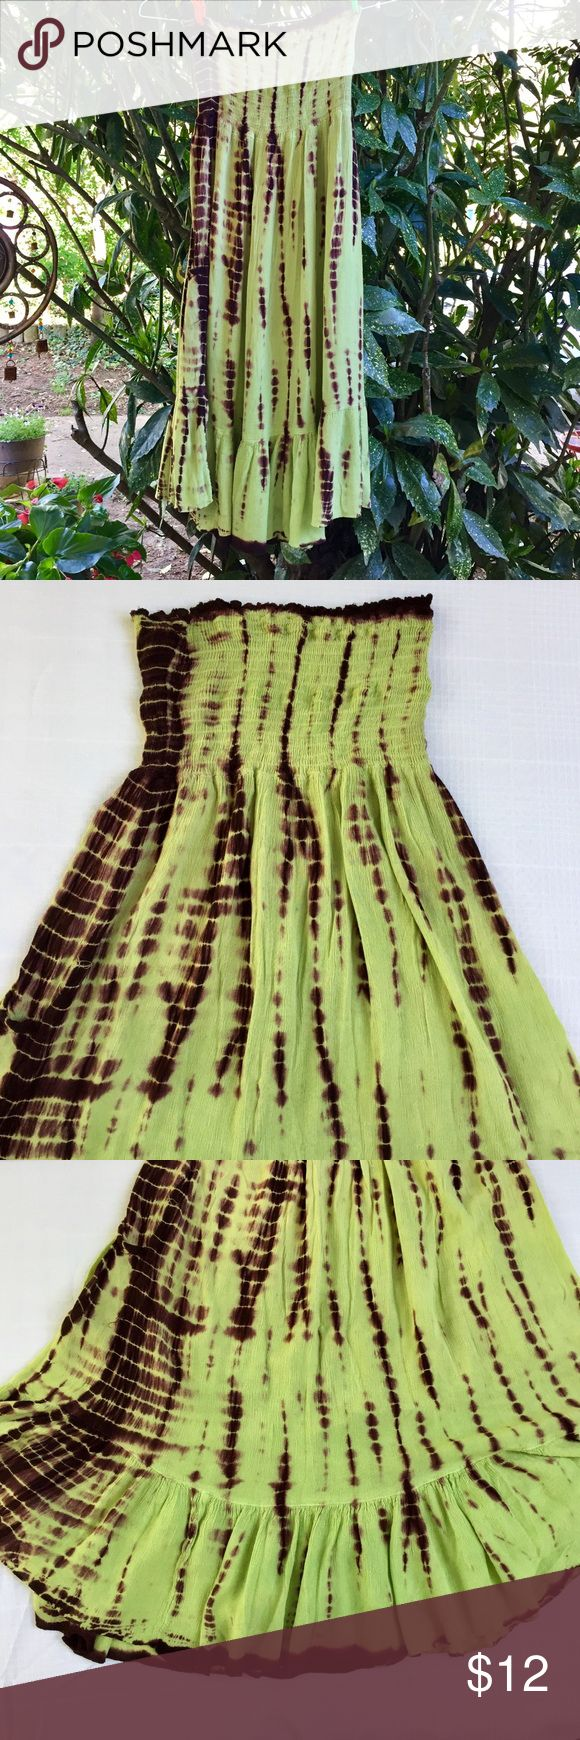 Boutique Tie dye strapless dress Boutique Tie dye strapless dress Tight fitted on top and loose at the bottom, also has pockets. Super comfy, brown and green tie dye pattern. Can be used as a sundress or a bathing suit cover up. Tag says free size, but I would say XS-XL  depending where you want the dress to fall. I'm size M-L and it falls just below the knee. Fabric is 100% Rayon Boutique Dresses Strapless